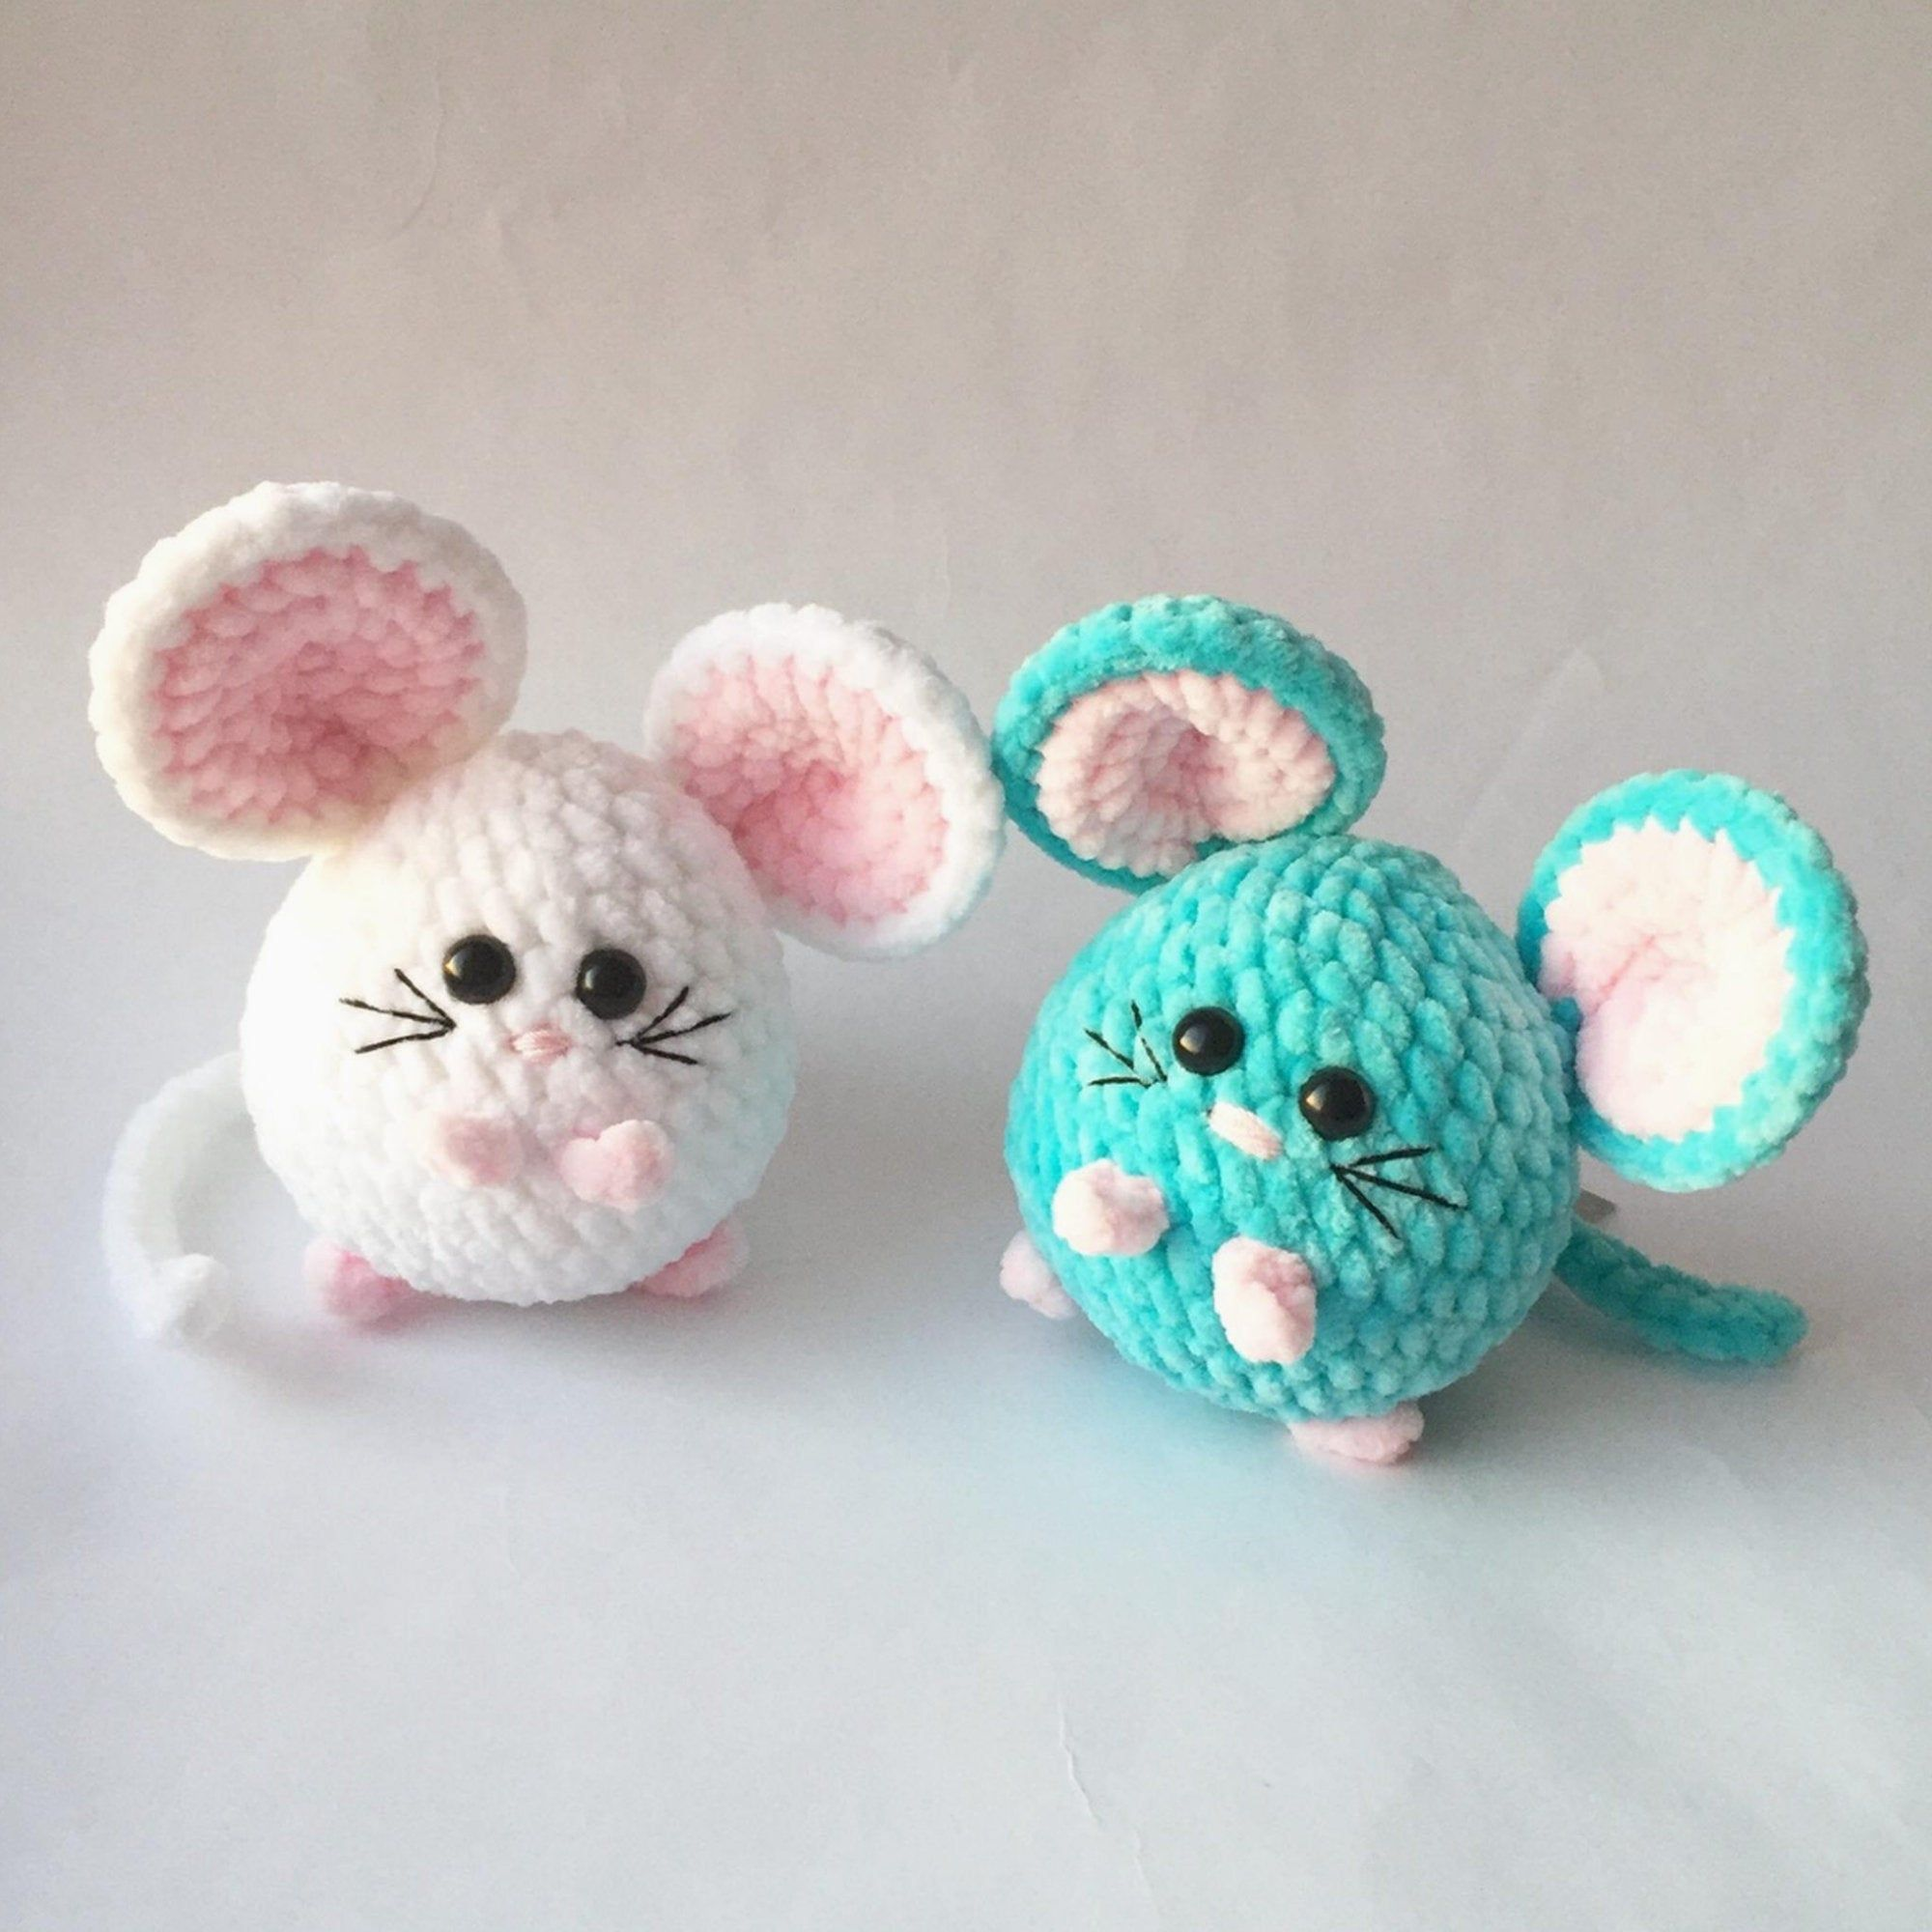 Little Plush mouse toy keychain | Christmas gift |